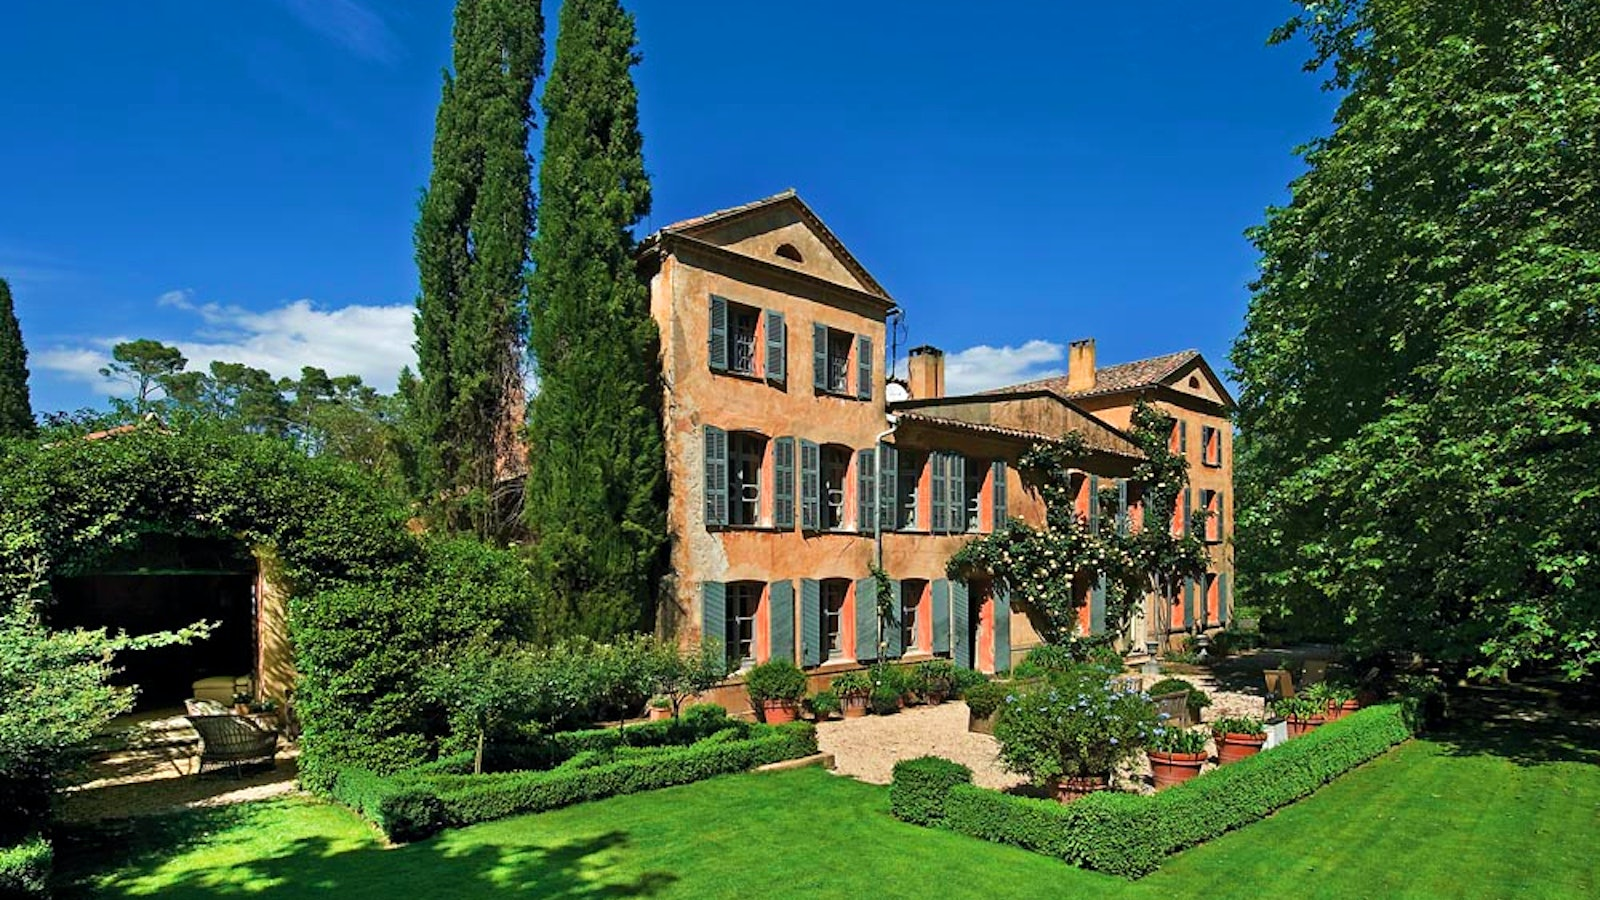 George Clooney's newly bought wine estate in France disputed Un_canadel051821_1600